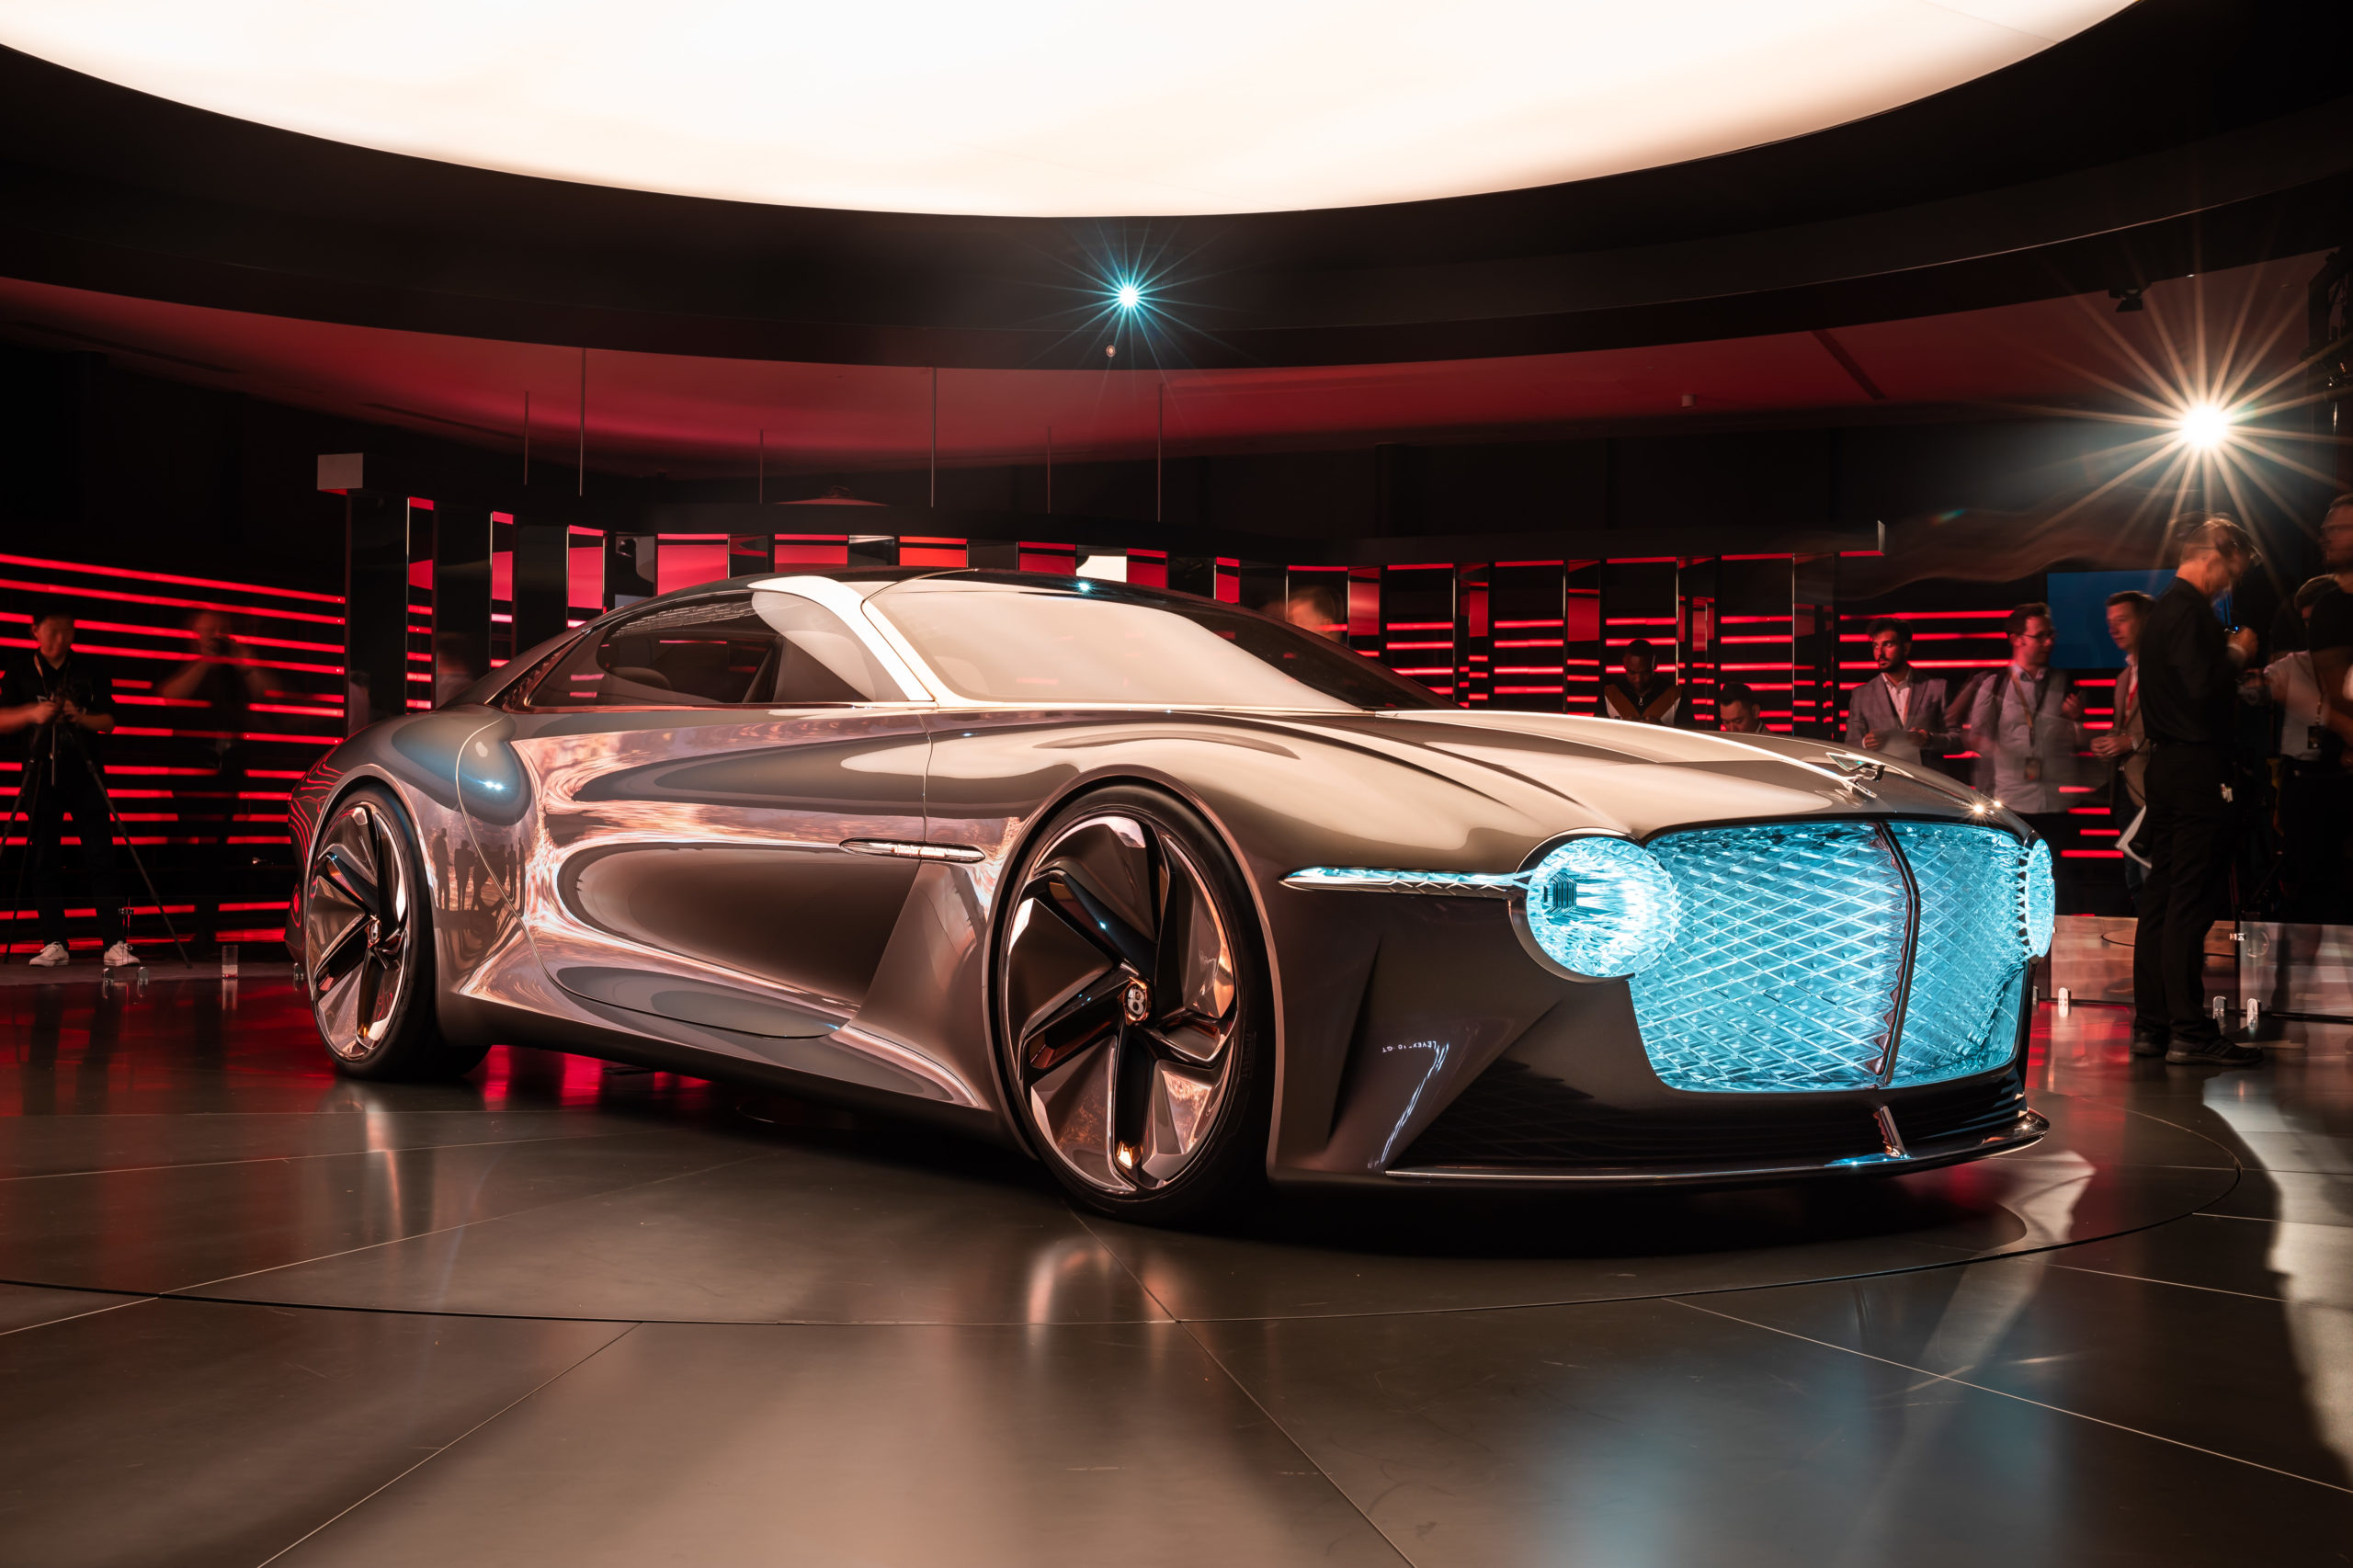 Bentley To Only Sell Electric Vehicles By 2030 Repairer Driven Newsrepairer Driven News